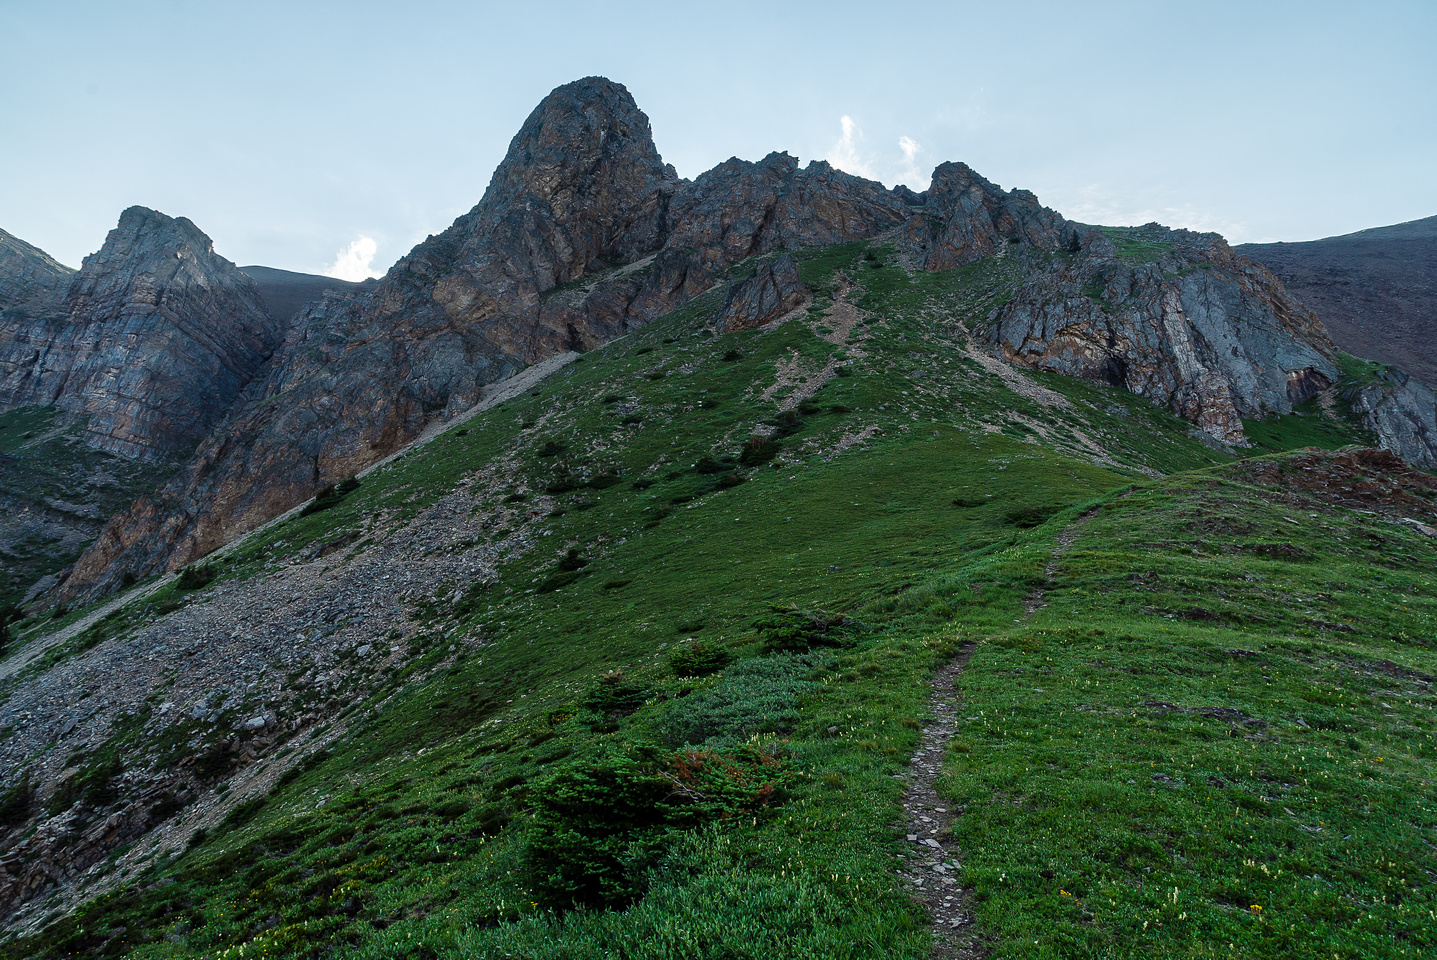 """Arriving at an upper grassy bench which was the only relief from the steep grade, just before the ascent through the """"gates"""" visible above."""